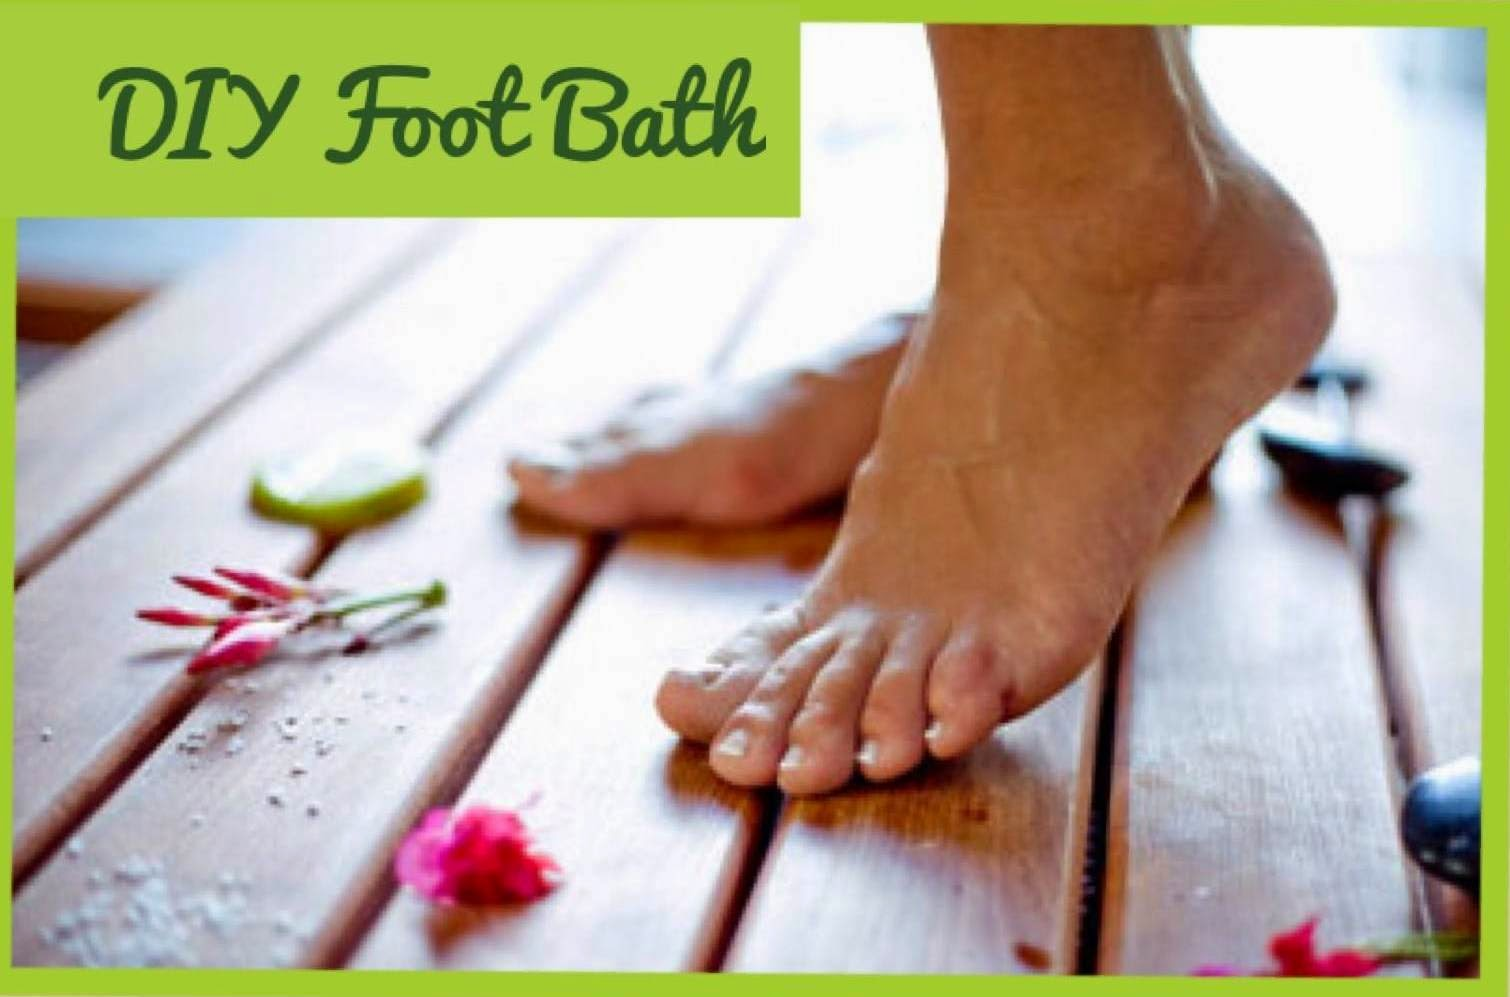 Foot soak , feet soak , feet pedicure, pedicure, relaxing pedicure, stress free pedicure, DIY Foot soak , DIY feet soak , DIY feet pedicure, DIY pedicure, DIY relaxing pedicure, DIY stress free pedicure, Home made Foot soak , Home made feet soak , Home made feet pedicure, Home made pedicure, Home made relaxing pedicure, Home made stress free pedicure, Home remedies for stress, home remedies for foot Oder , home remedies to relieve stress, home remedies for cold, home remedies for fever, home remedies for summer , home remedies to sleep well, home remedies for clean feet, home remedies for pain, home remedies for energy , home remedies for fatigue , home remedies for detoxification , home remedies for body detoxification , home remedies for foot detoxification ,Detoxification, detox, how to detox at home, at home ways to detox, DIY foot sole for detoxification , DIY detoxification, How to get rid of stress, How to get rid of foot Oder , home remedies to relieve stress, How to get rid of cold, How to get rid of fever, How to get rid of summer ,  How to get rid of insomnia, How to get rid of dirty feet, How to get rid of pain, How to get rid of bad energy , How to get rid of fatigue , How to do detoxification at home , How to do body detoxification , How to do foot detoxification , mustard , mustard seeds, how to use mustard seeds, uses of mustard seed, how to use mustard seeds for pain, how to use mustard seeds for body pain, how to use mustard seeds for foot pain, how to use mustard seeds for foot Oder, how to use mustard seeds for joint pain, how to use mustard seeds for detox, how to use mustard seeds for detoxification , how to use mustard seeds for stress, how to use mustard seeds for fatigue, how to use mustard seeds for insomnia , how to use mustard seeds for cold, how to use mustard seeds for fever , how to use mustard seeds for foot soak, how to use mustard seeds for foot bath, how to use mustard seeds for bath, DIY mustard foot soak, DIY mustard soak, DIY mustard bath, DIY mustard foot bath, DIY mustard detox bath, DIY mustard detox foot bath, DIY mustard detoxification , Home made mustard foot soak, Home made mustard soak, Home made mustard bath, Home made mustard foot bath, Home made mustard detox bath, Home made mustard detox foot bath, Home made mustard detoxification , how to get rid of stress , how to relax body, how to get fresh smelling feet, happy feet, stress, fever, cold, fatigue, tiered, nap, insomnia